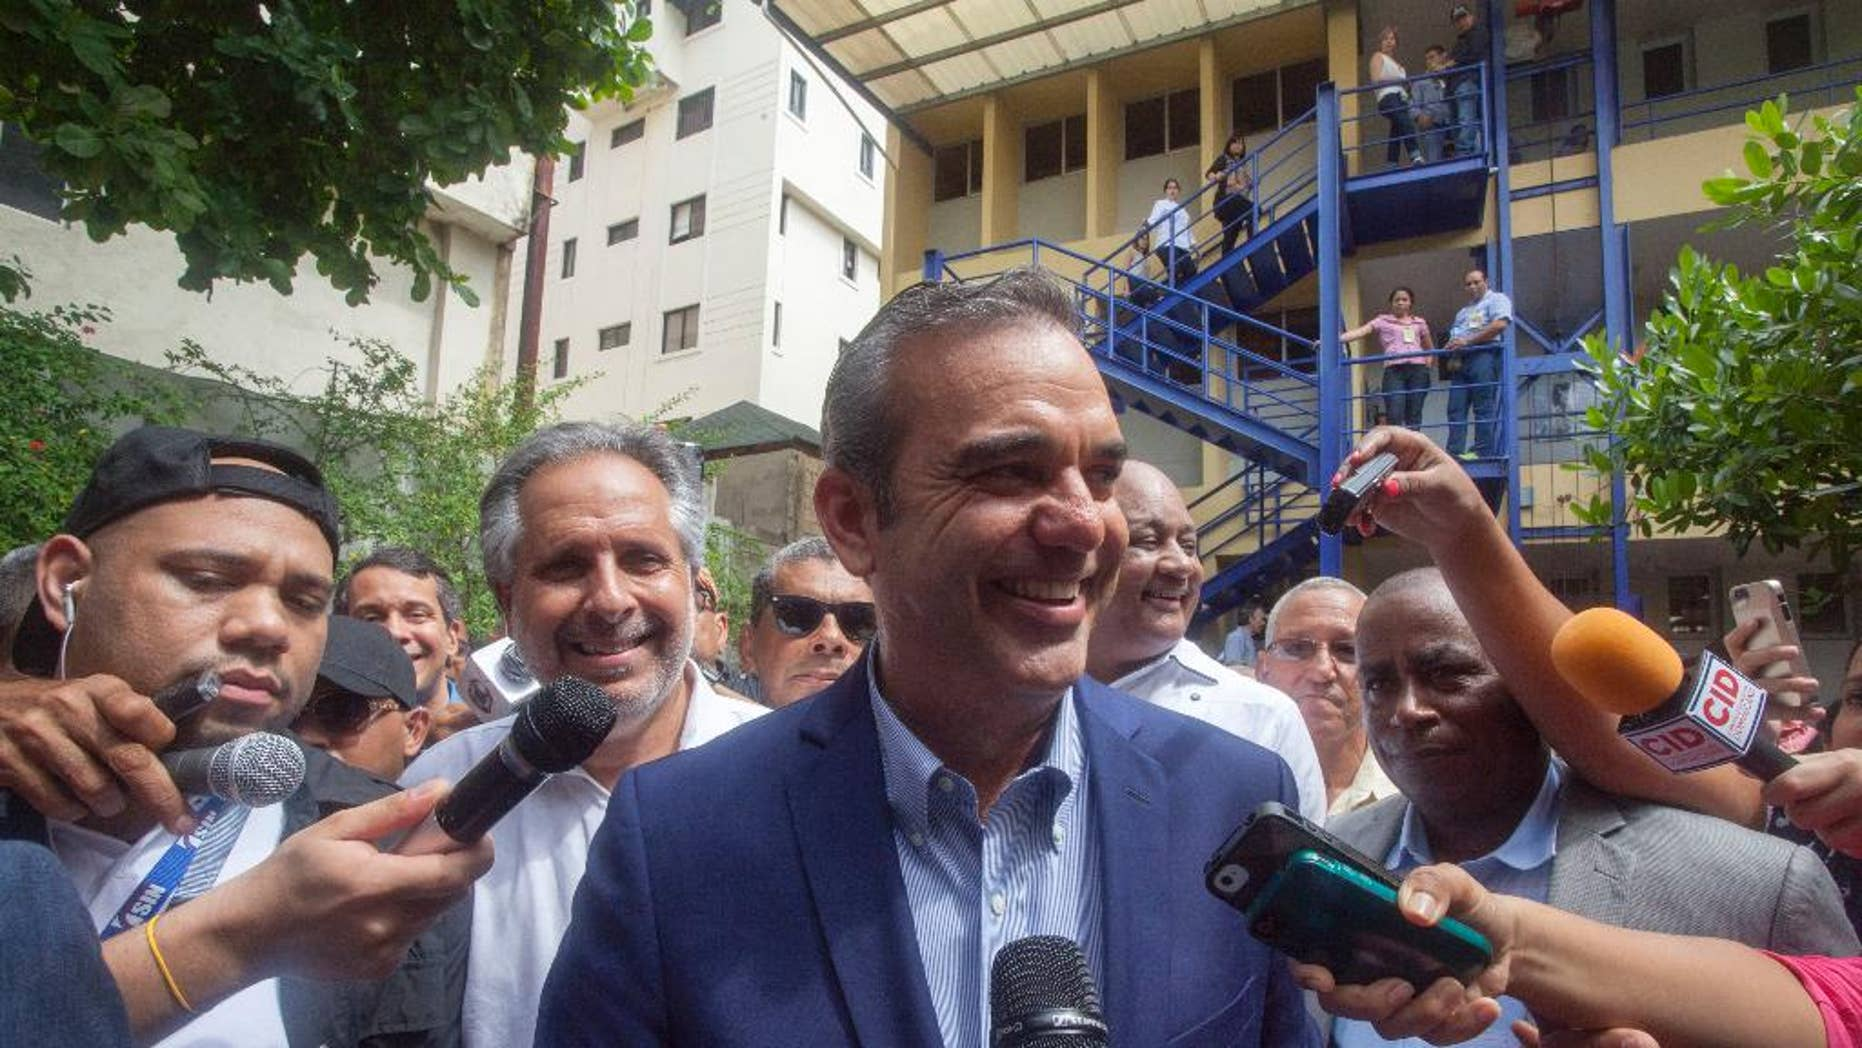 Luis Abinader, center, presidential candidate of the opposition Modern Revolutionary Party, speaks to the press after voting at the presidential, congressional and municipal elections in Santo Domingo, Dominican Republic, Sunday, May 15, 2016. Dominicans faced a dizzying array of choices Sunday in one of the most complex ballots in recent history, with eight candidates for president, all 222 members of Congress up for re-election and thousands of people vying for local offices around the country. Second from left behind Abinader is candidate for Mayor Alberto Atallah.(AP Photo/Tatiana Fernandez)